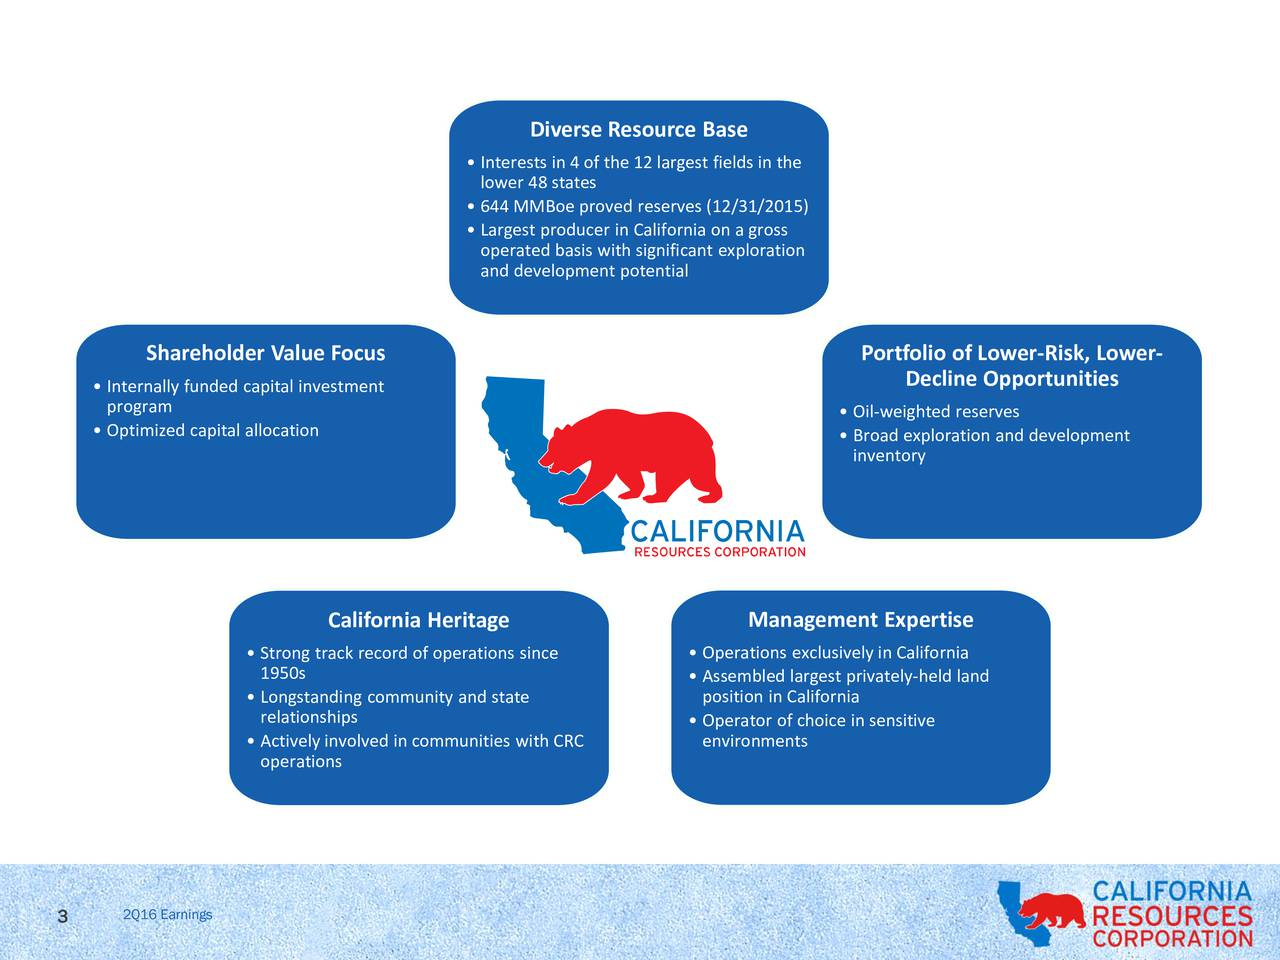 Interests in 4 of the 12 largest fields in the lower 48 states 644 MMBoe proved reserves (12/31/2015) Largest producer in California on a gross operated basis with significant exploration and development potential Shareholder Value Focus Portfolio of Lower-Risk, Lower- Decline Opportunities Internally funded capital investment program  Oil-weighted reserves Optimized capital allocation  Broad exploration and development inventory California Heritage Management Expertise Strong track record of operations since  Operations exclusively in California 1950s  Assembled largest privately-held land Longstanding community and state position in California relationships Operator of choice in sensitive Actively involved in communities with CRC environments operations 3 2Q16 Earnings